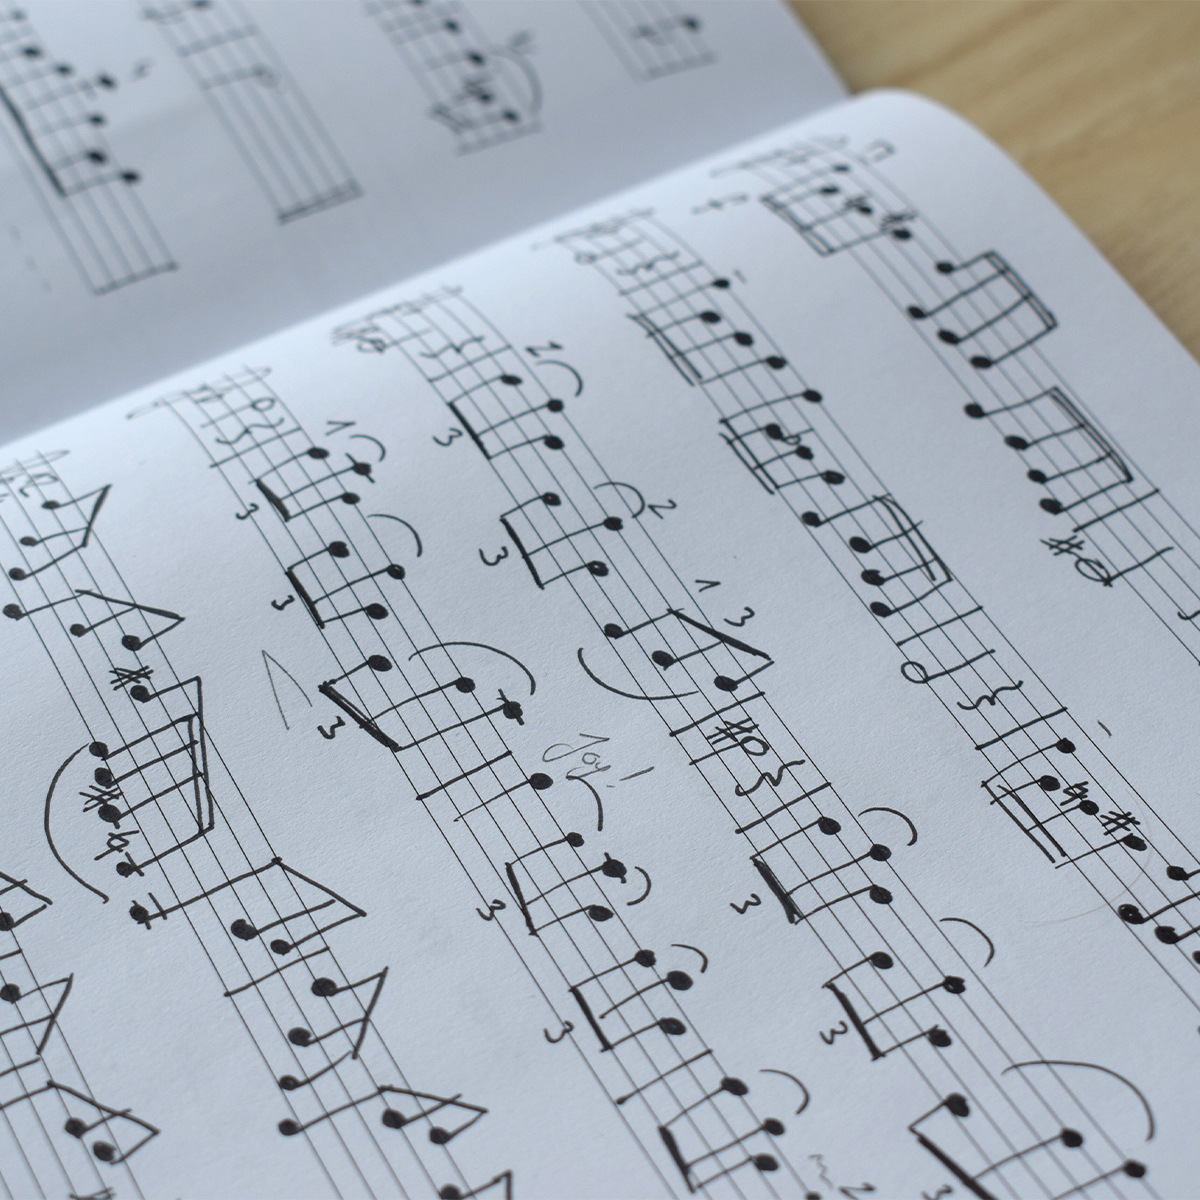 a-book-for-that-notation-notebook-how-to-use-composing